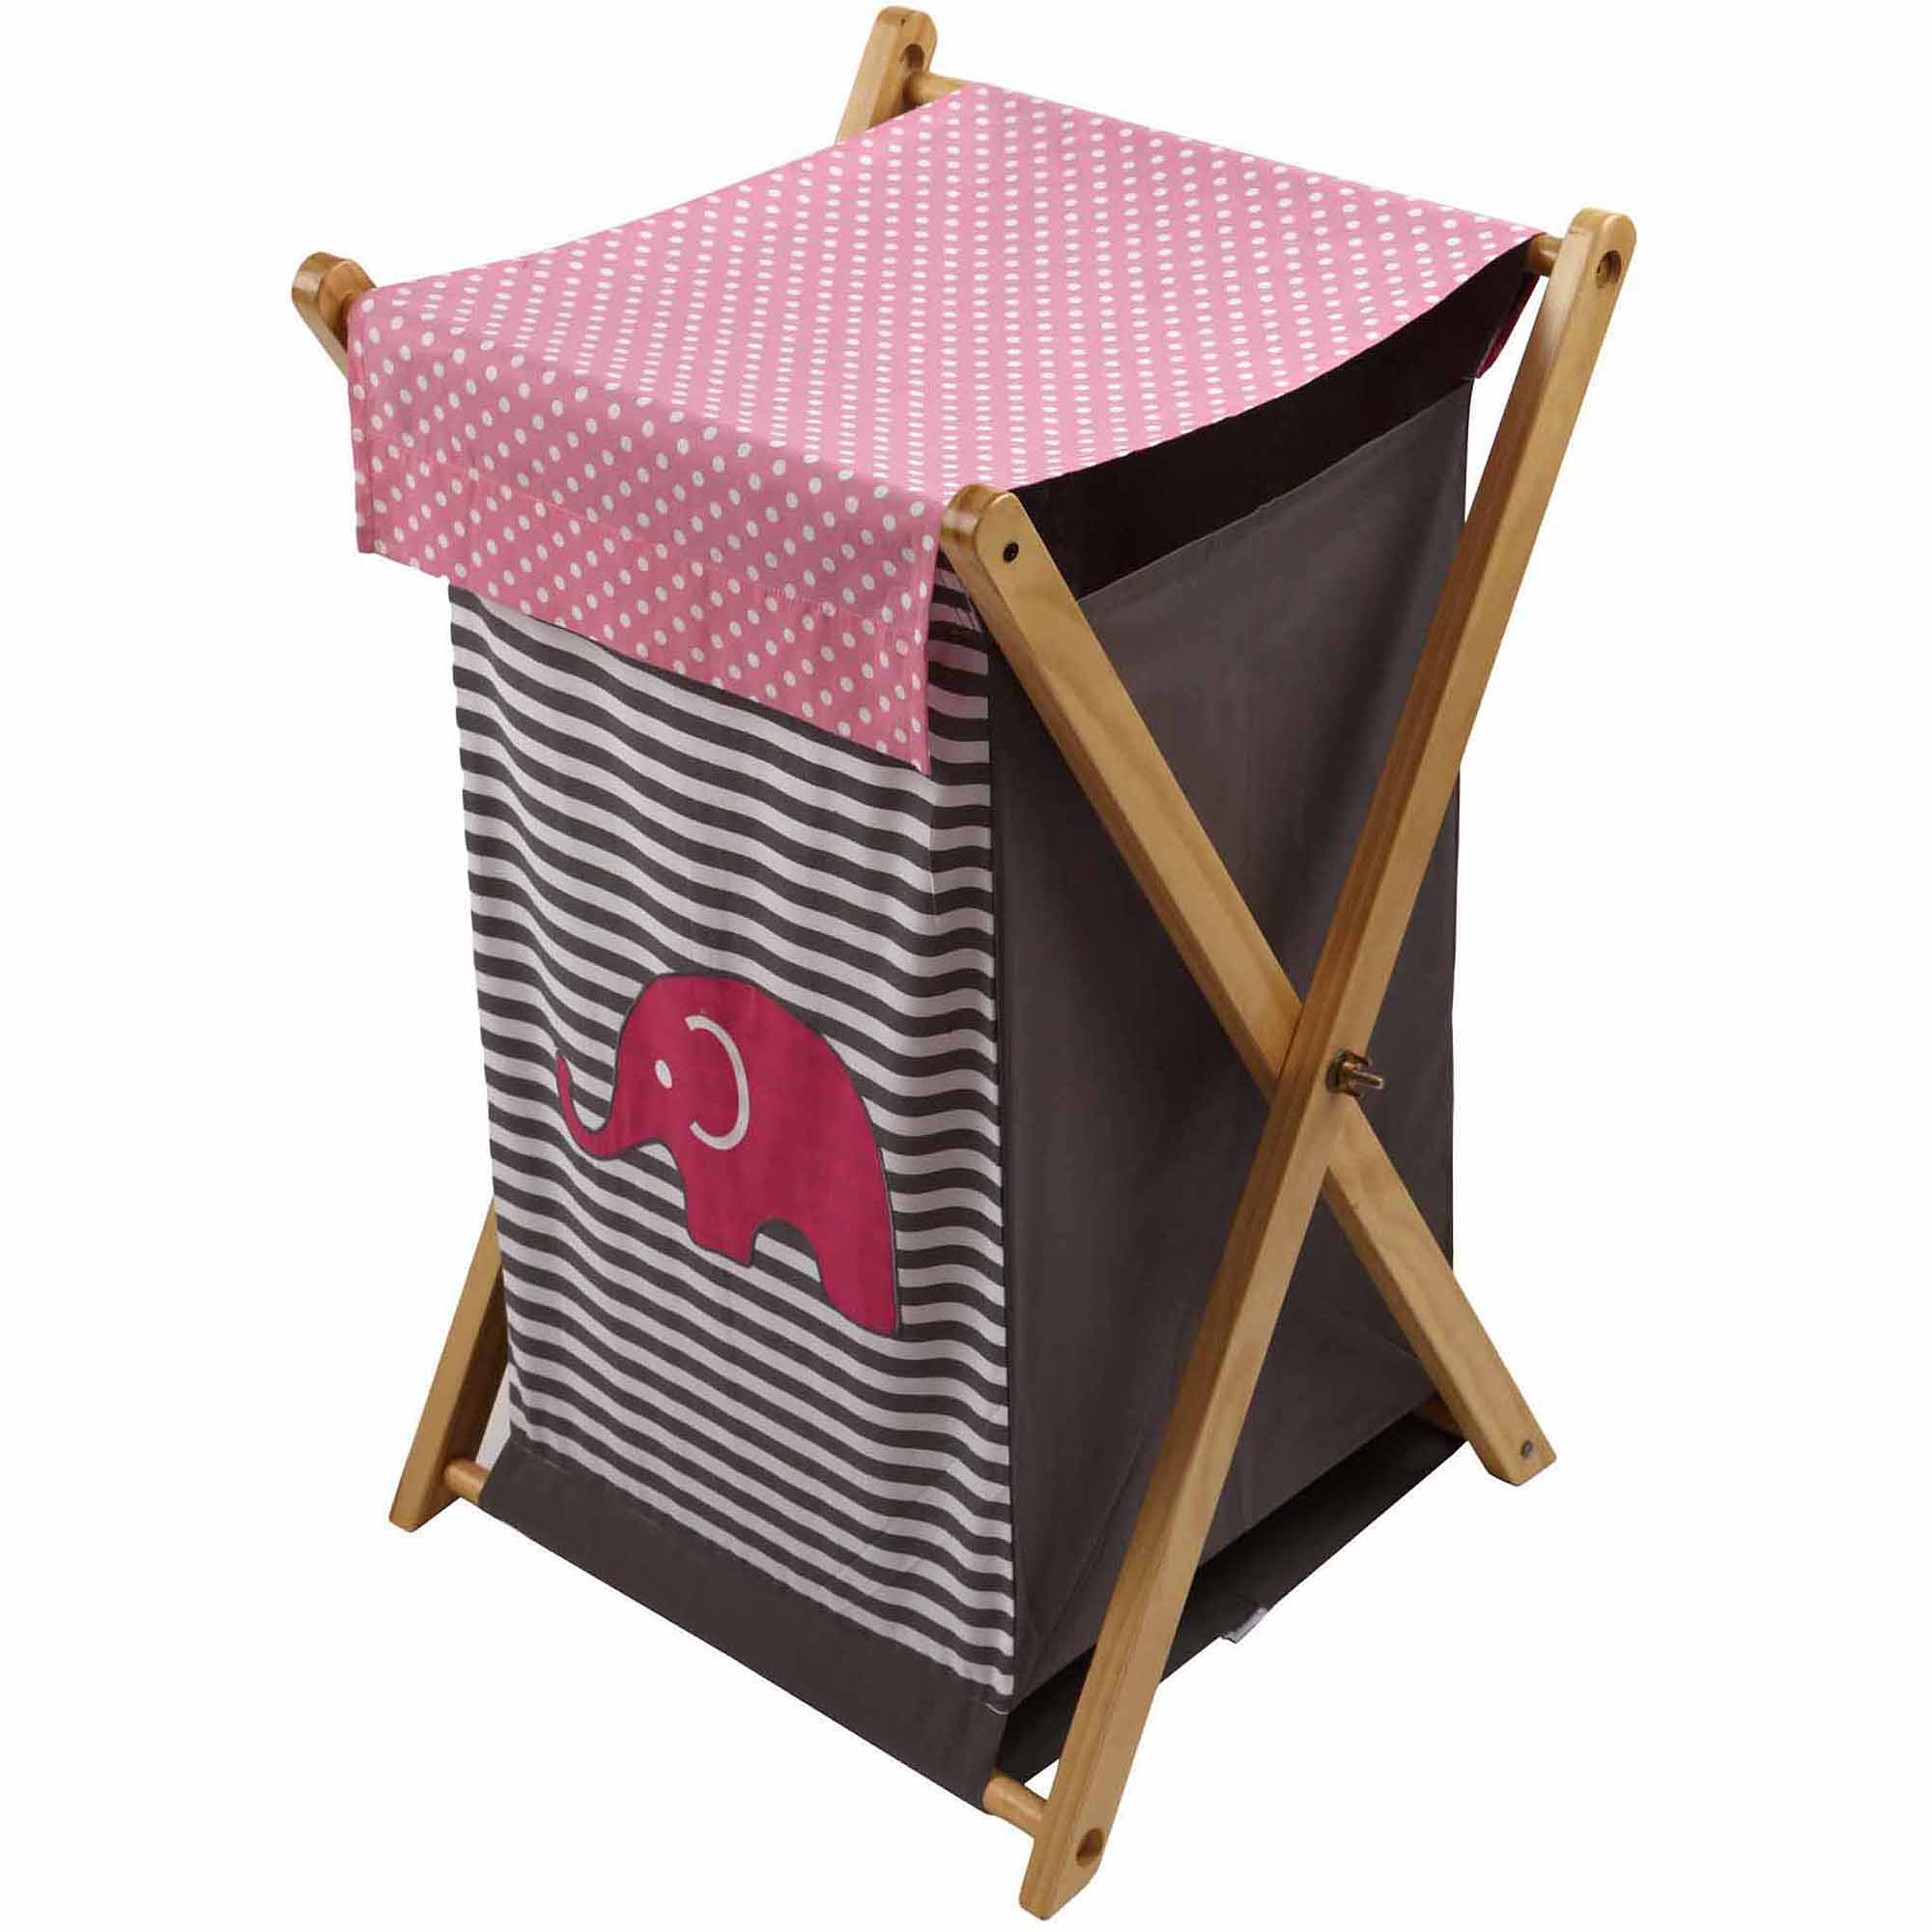 Bacati Elephants Hamper, Pink/Gray